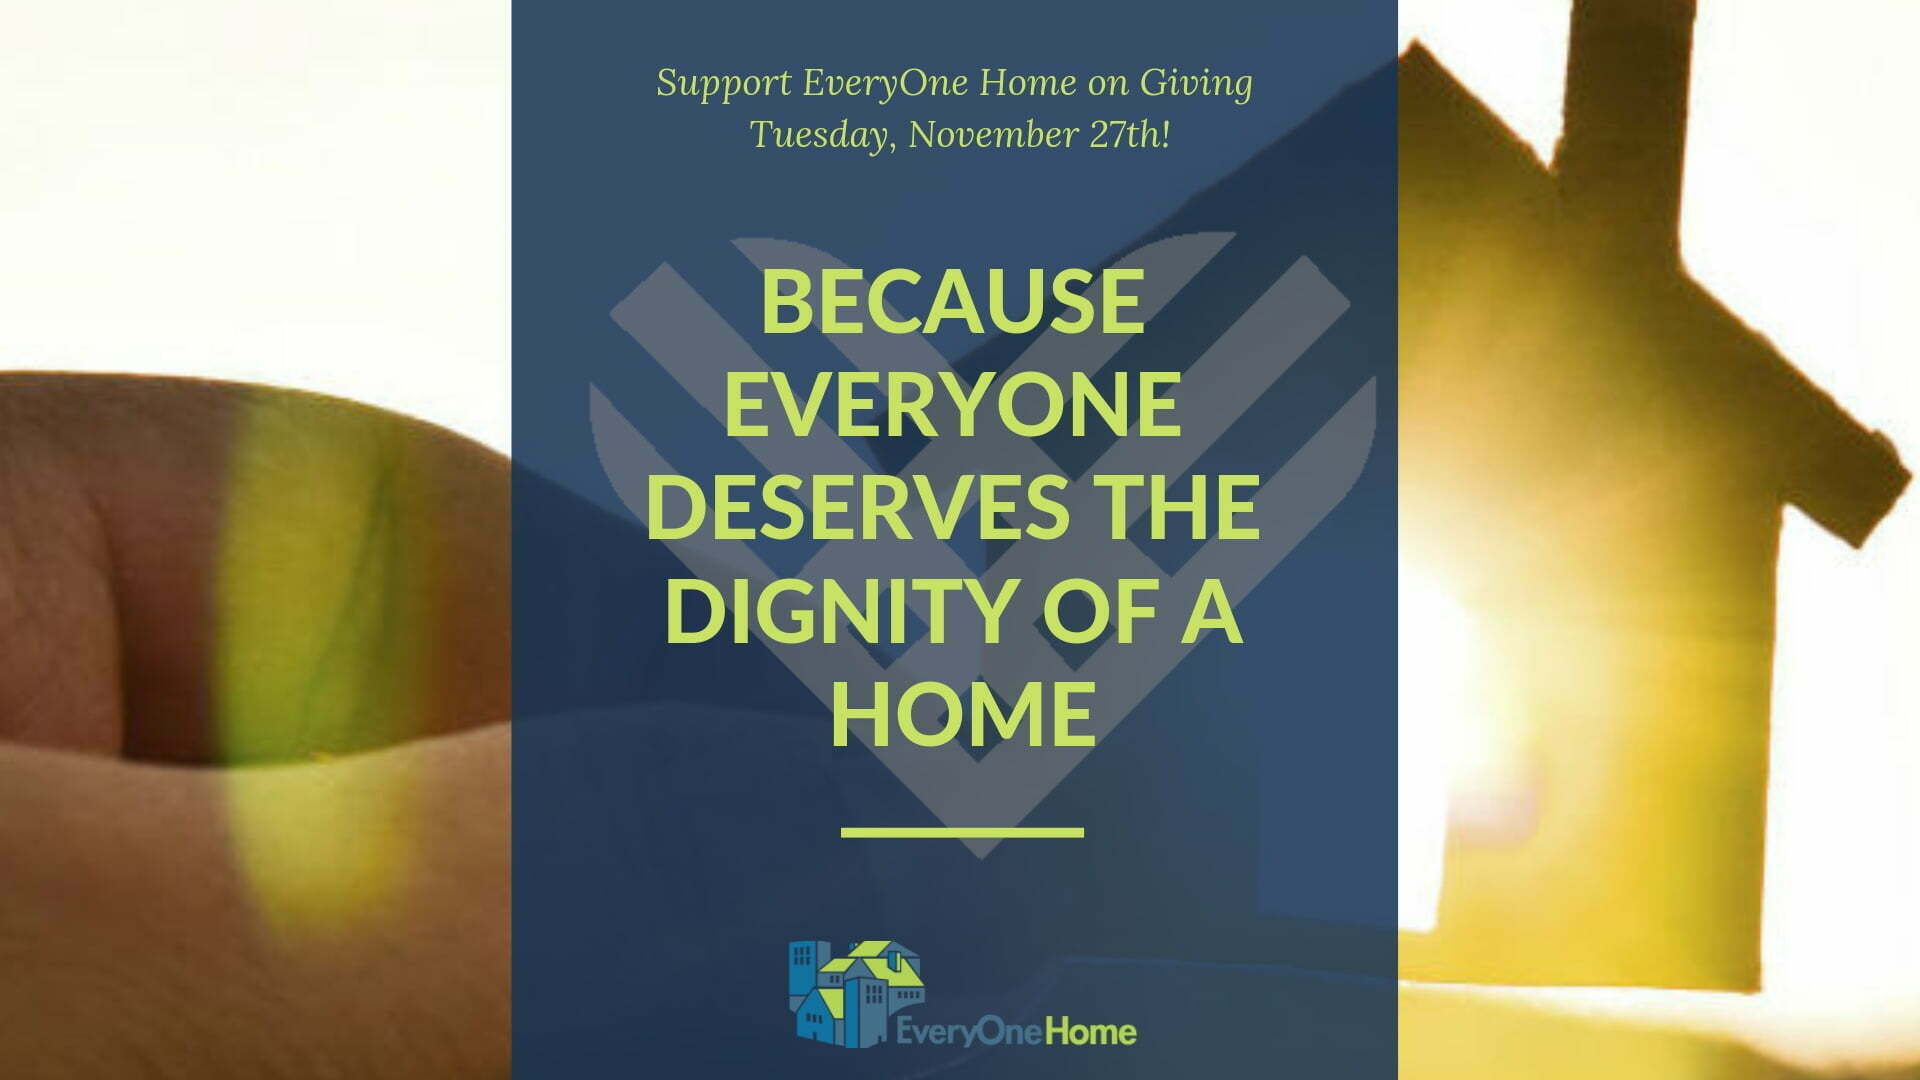 Support everyone home on nove 27th!